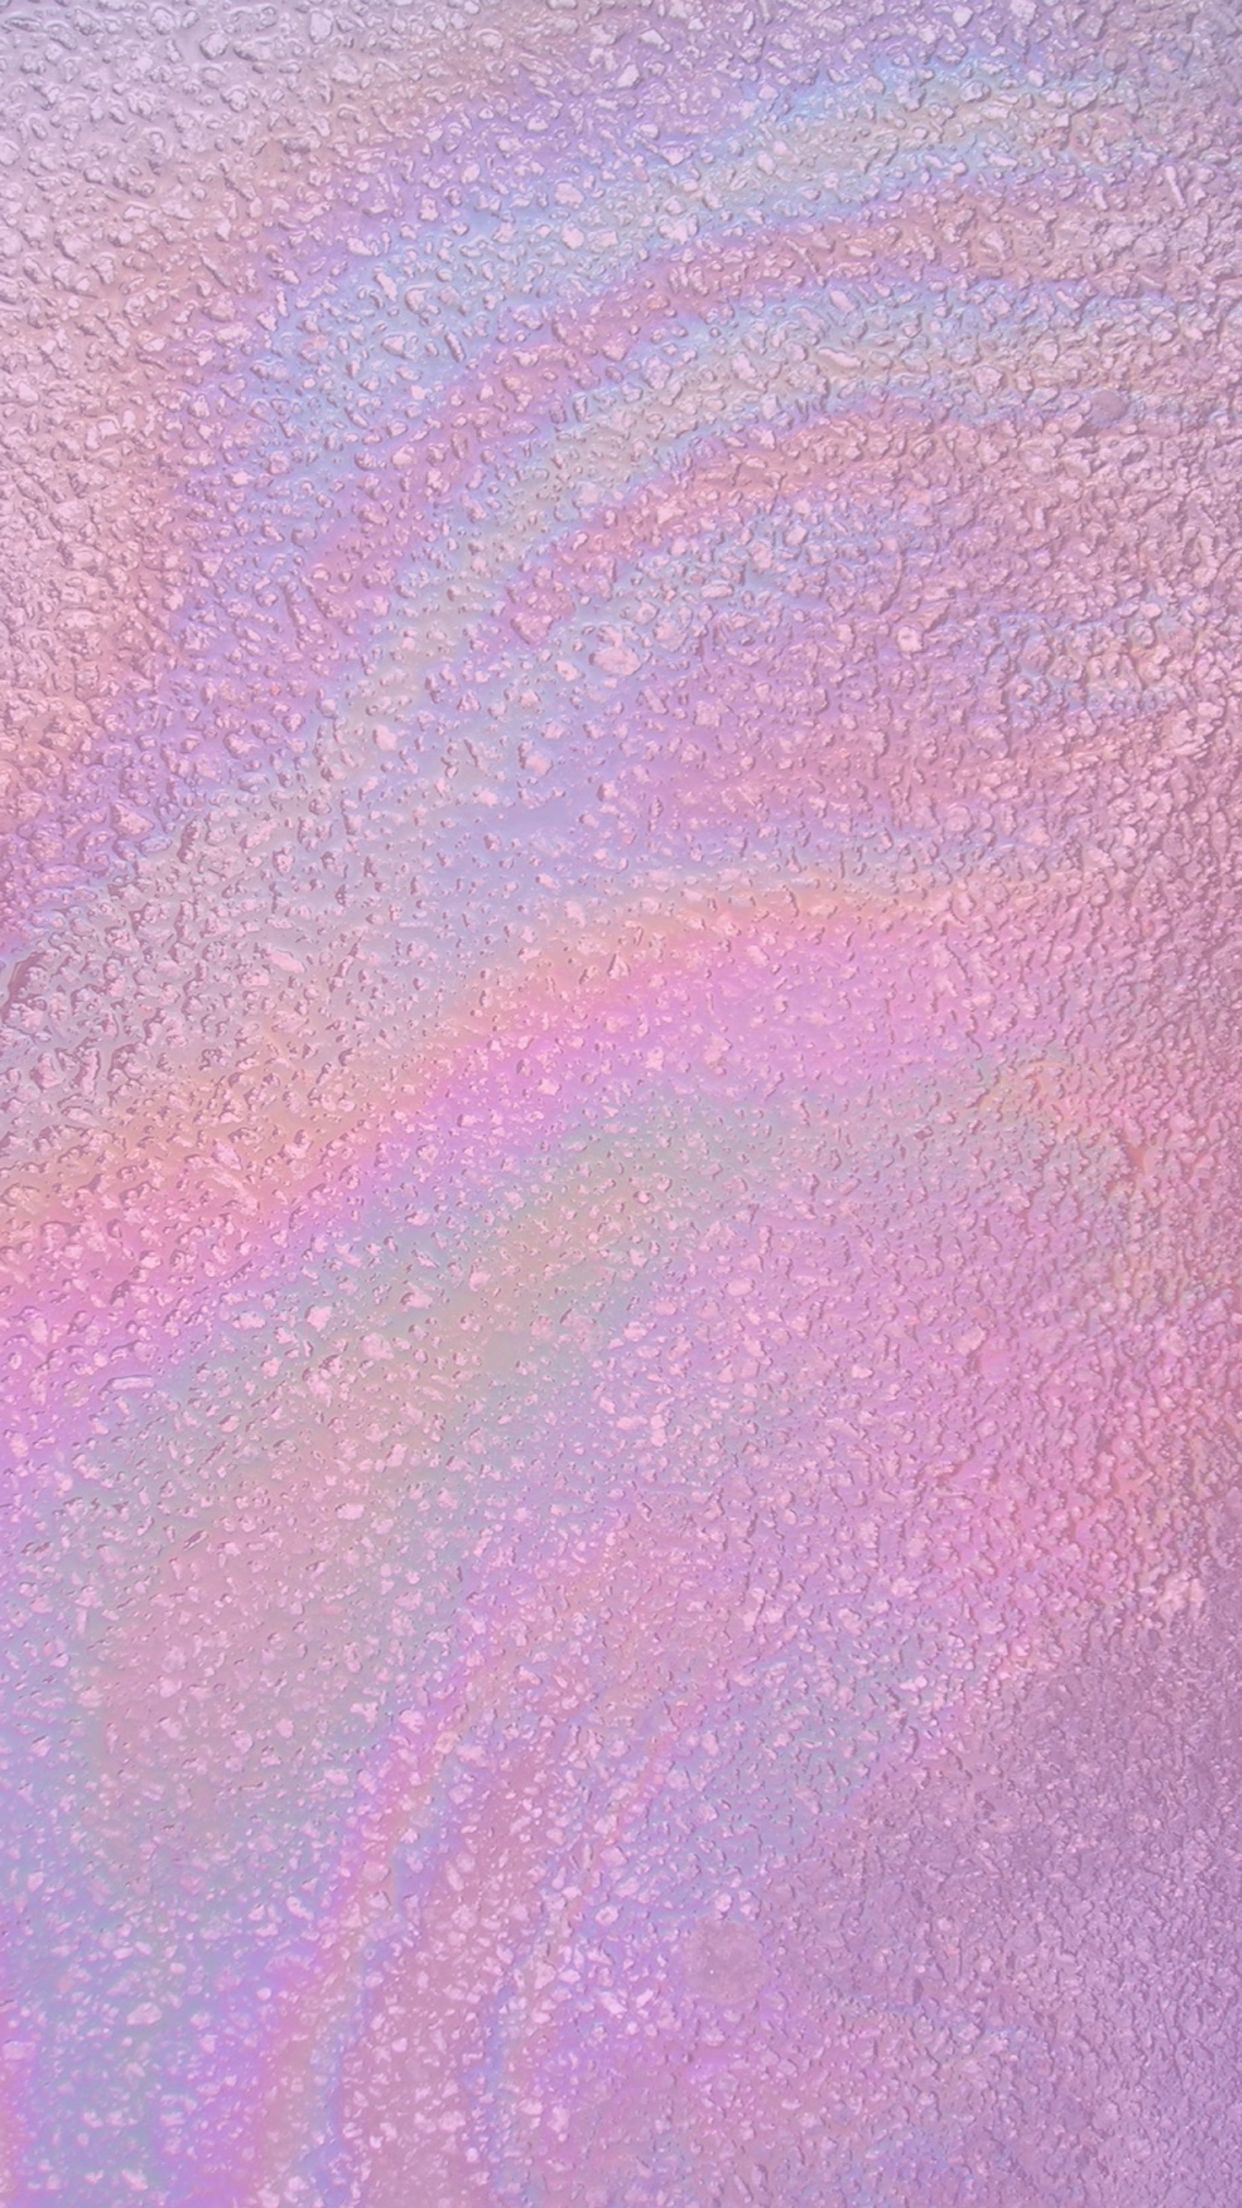 Iridescent Holographic Wallpaper IPhone Android HD Background Pink Purple